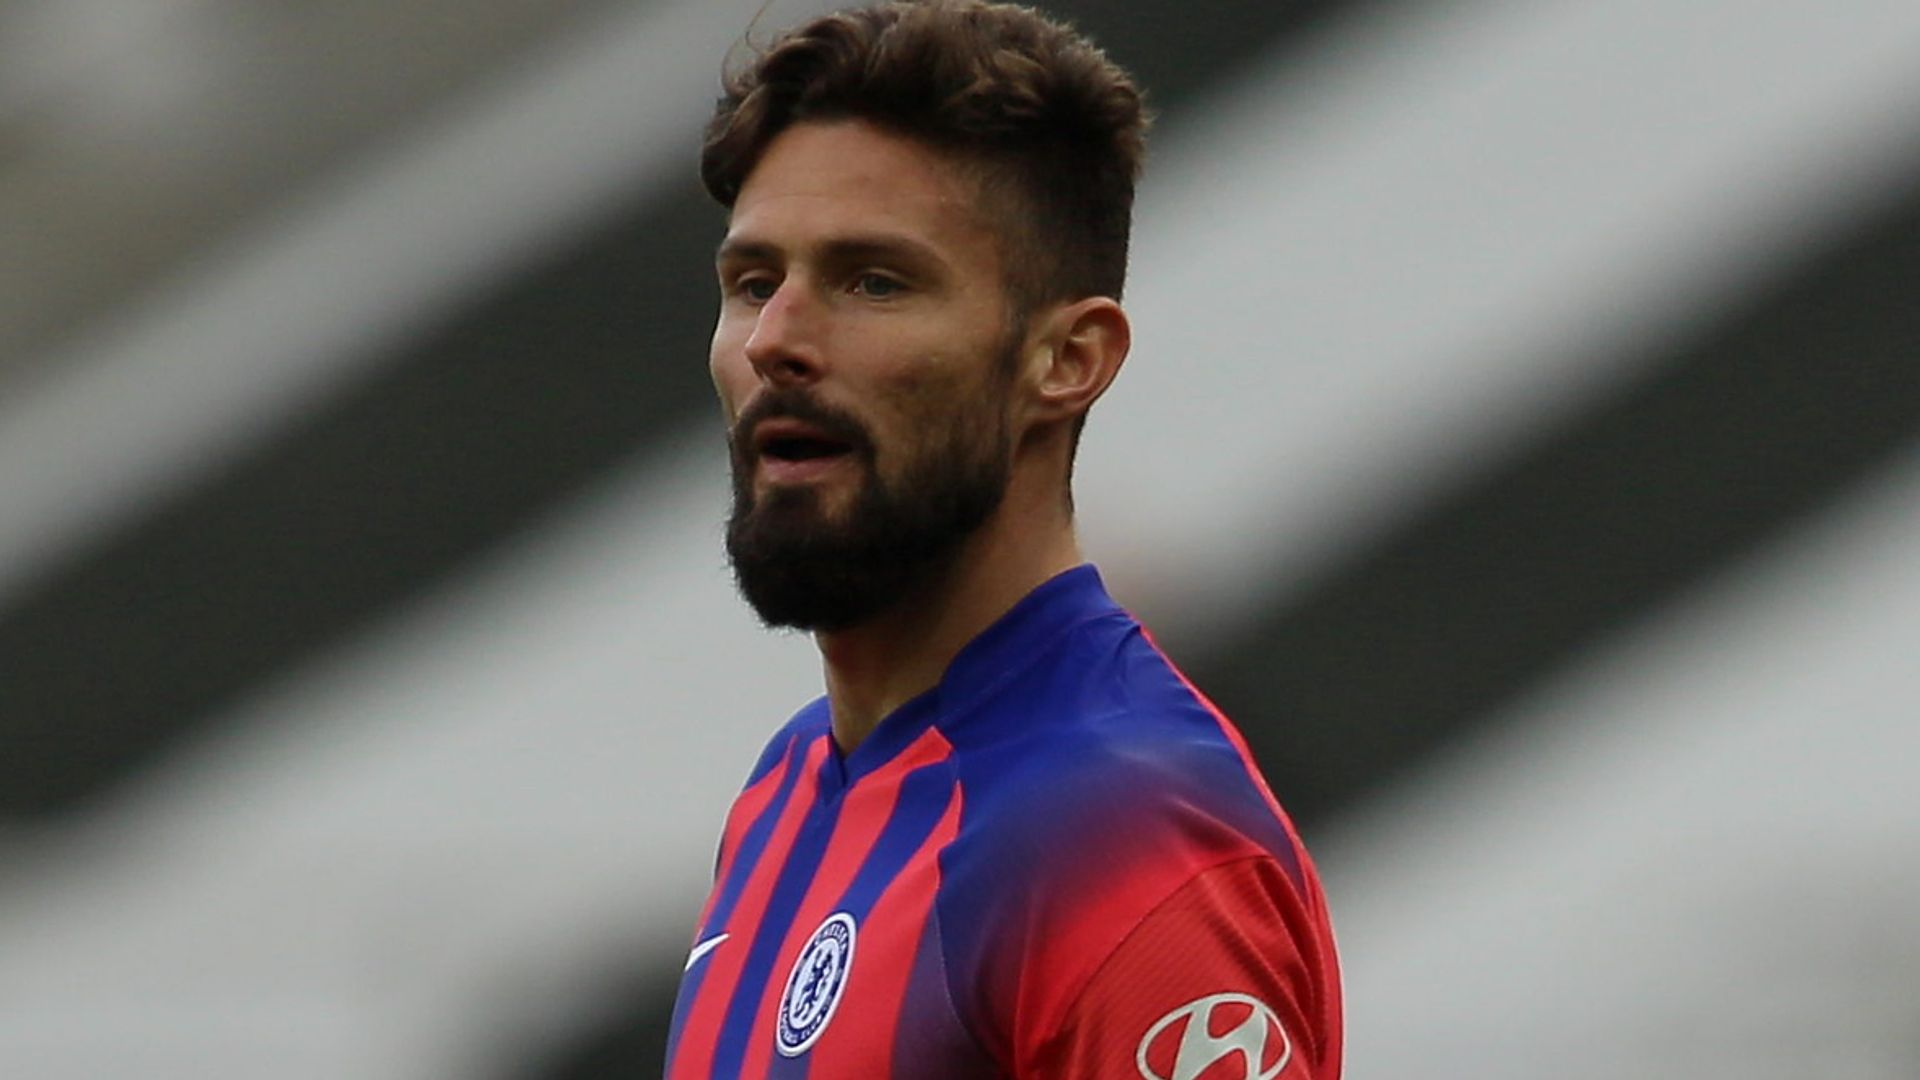 Giroud 'concerned' by lack of minutes